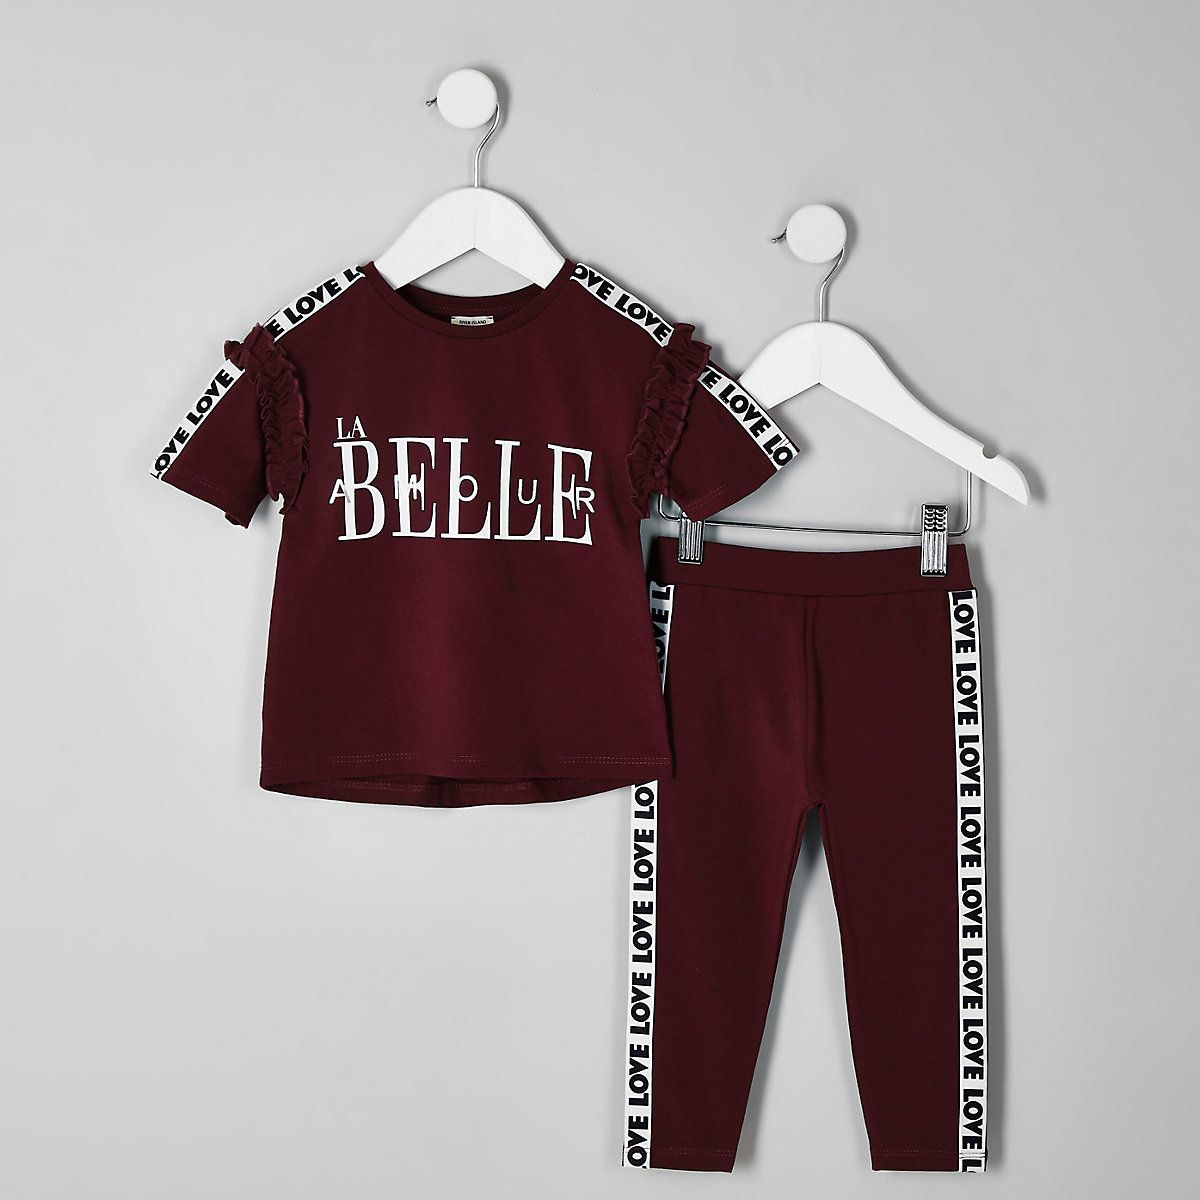 Mini girls purple tape 'Belle' T-shirt outfit